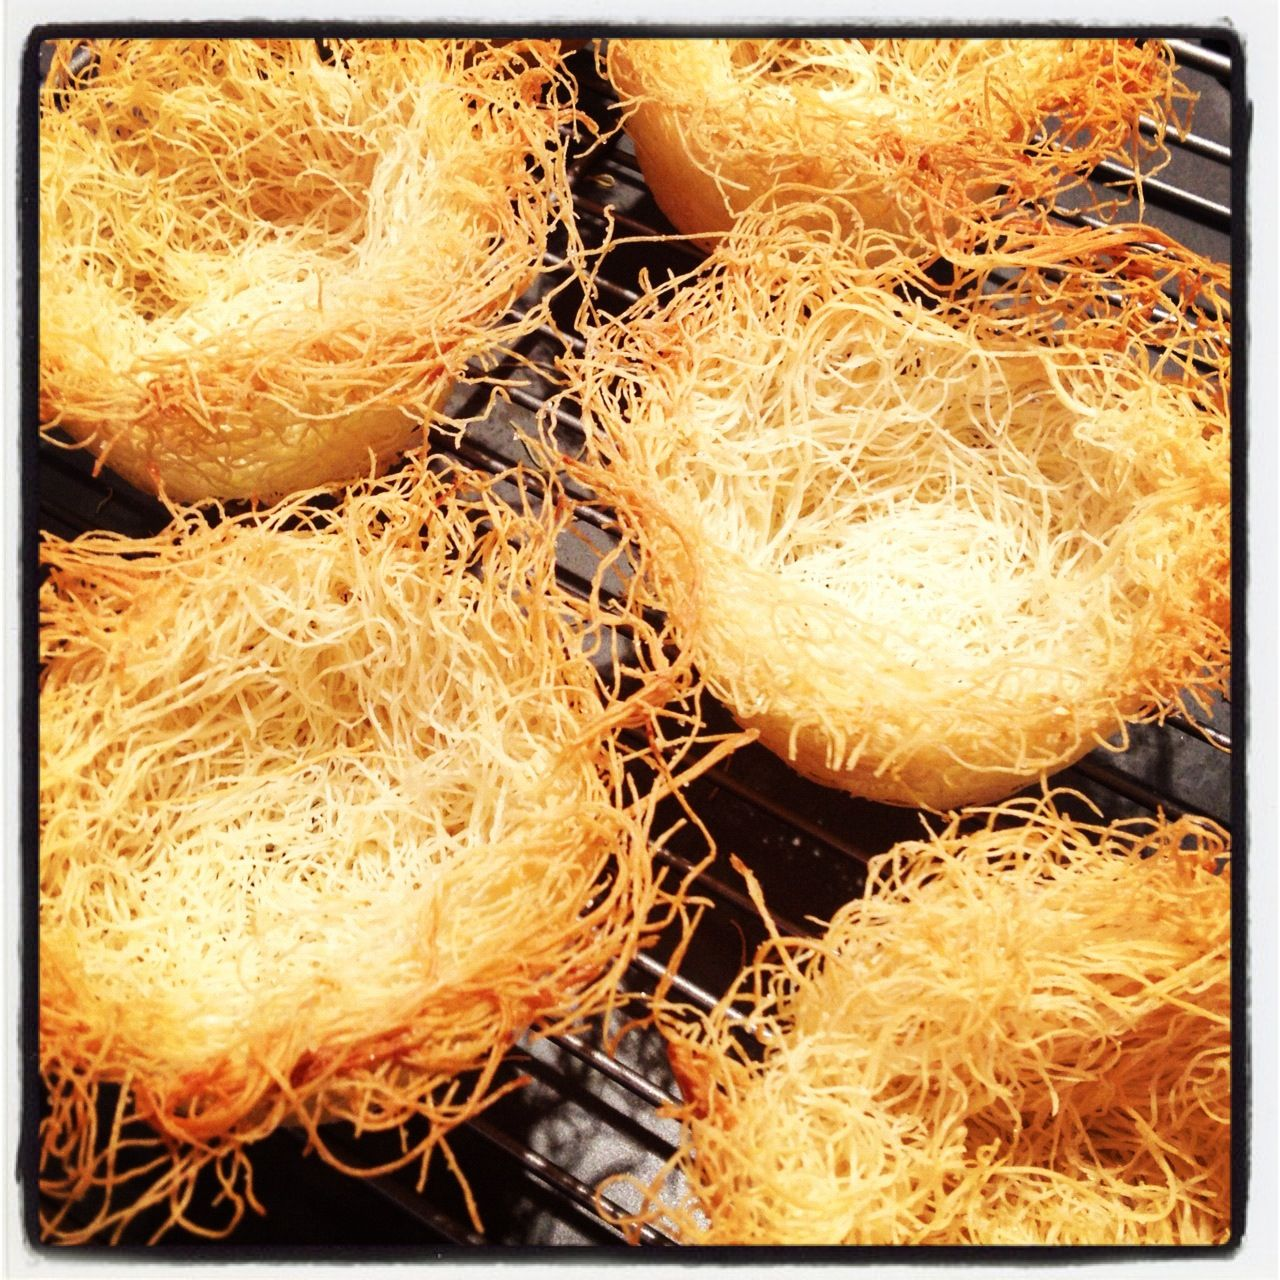 Kataifi bird's nests right from the oven!